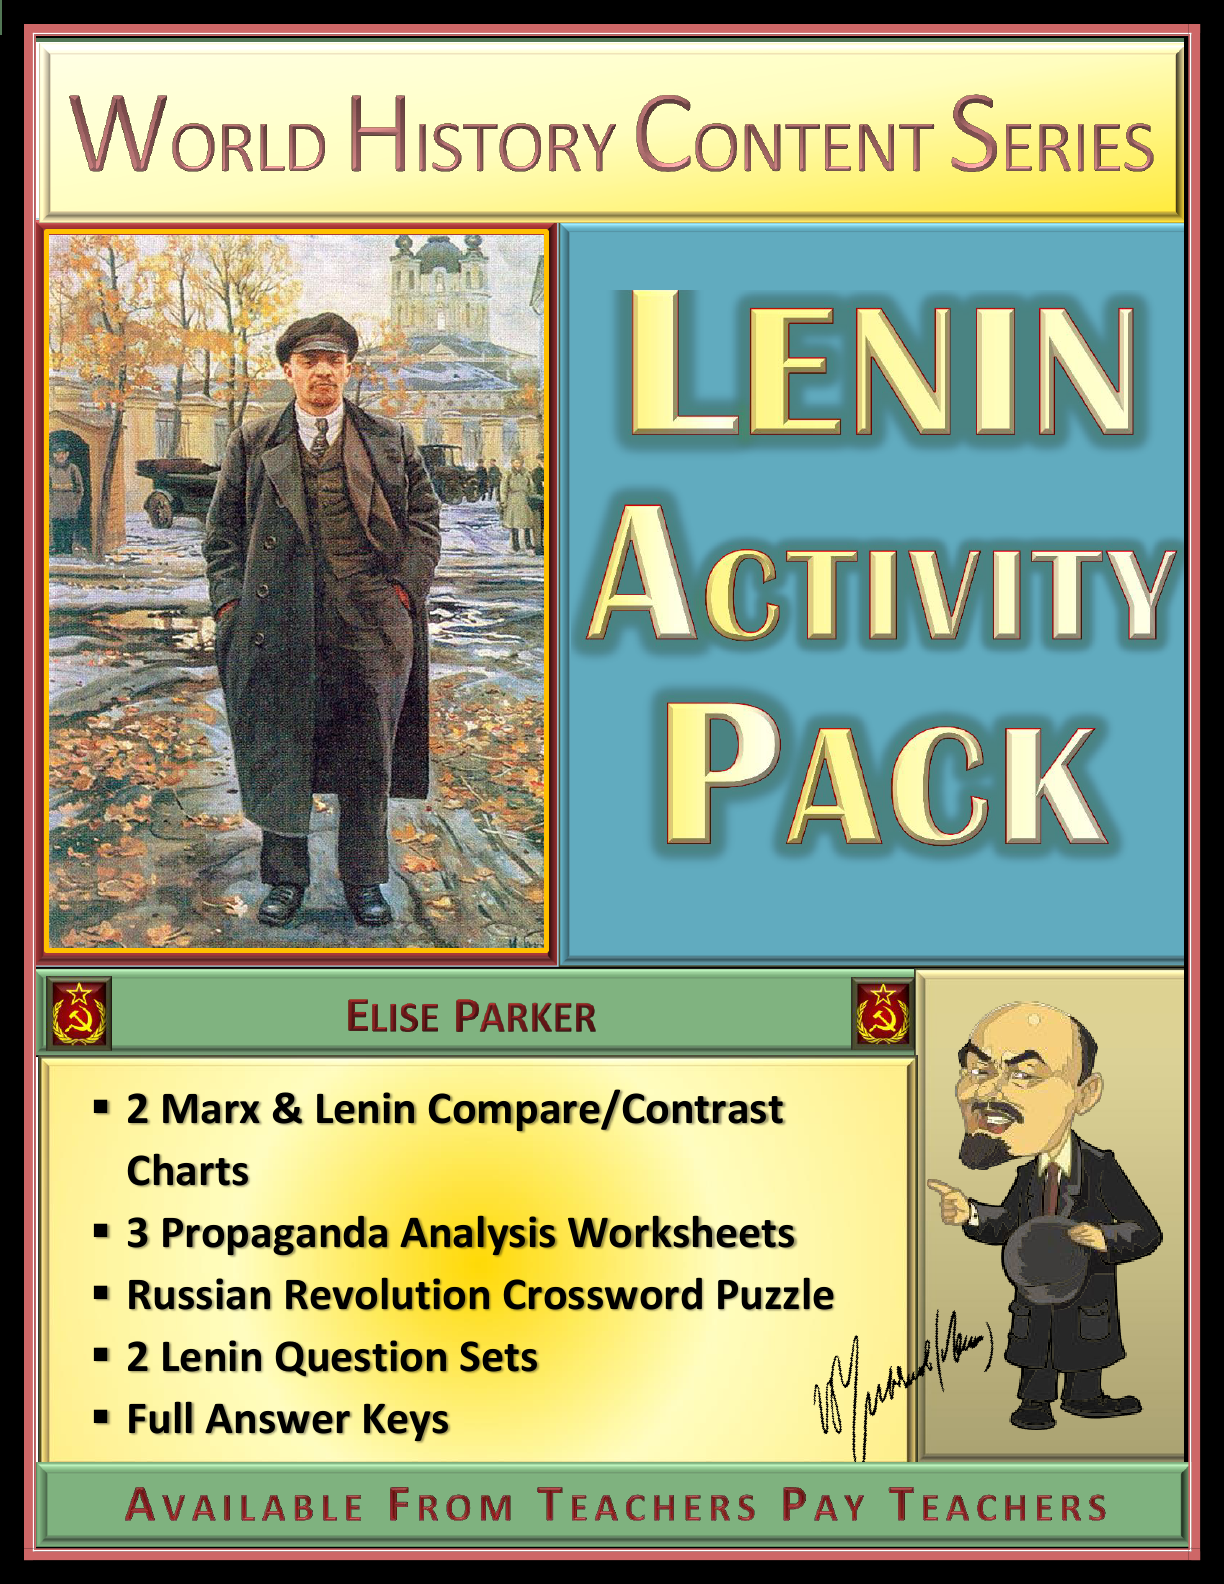 Lenin Activity Pack: Charts, Propaganda Worksheets, Question Sets ...